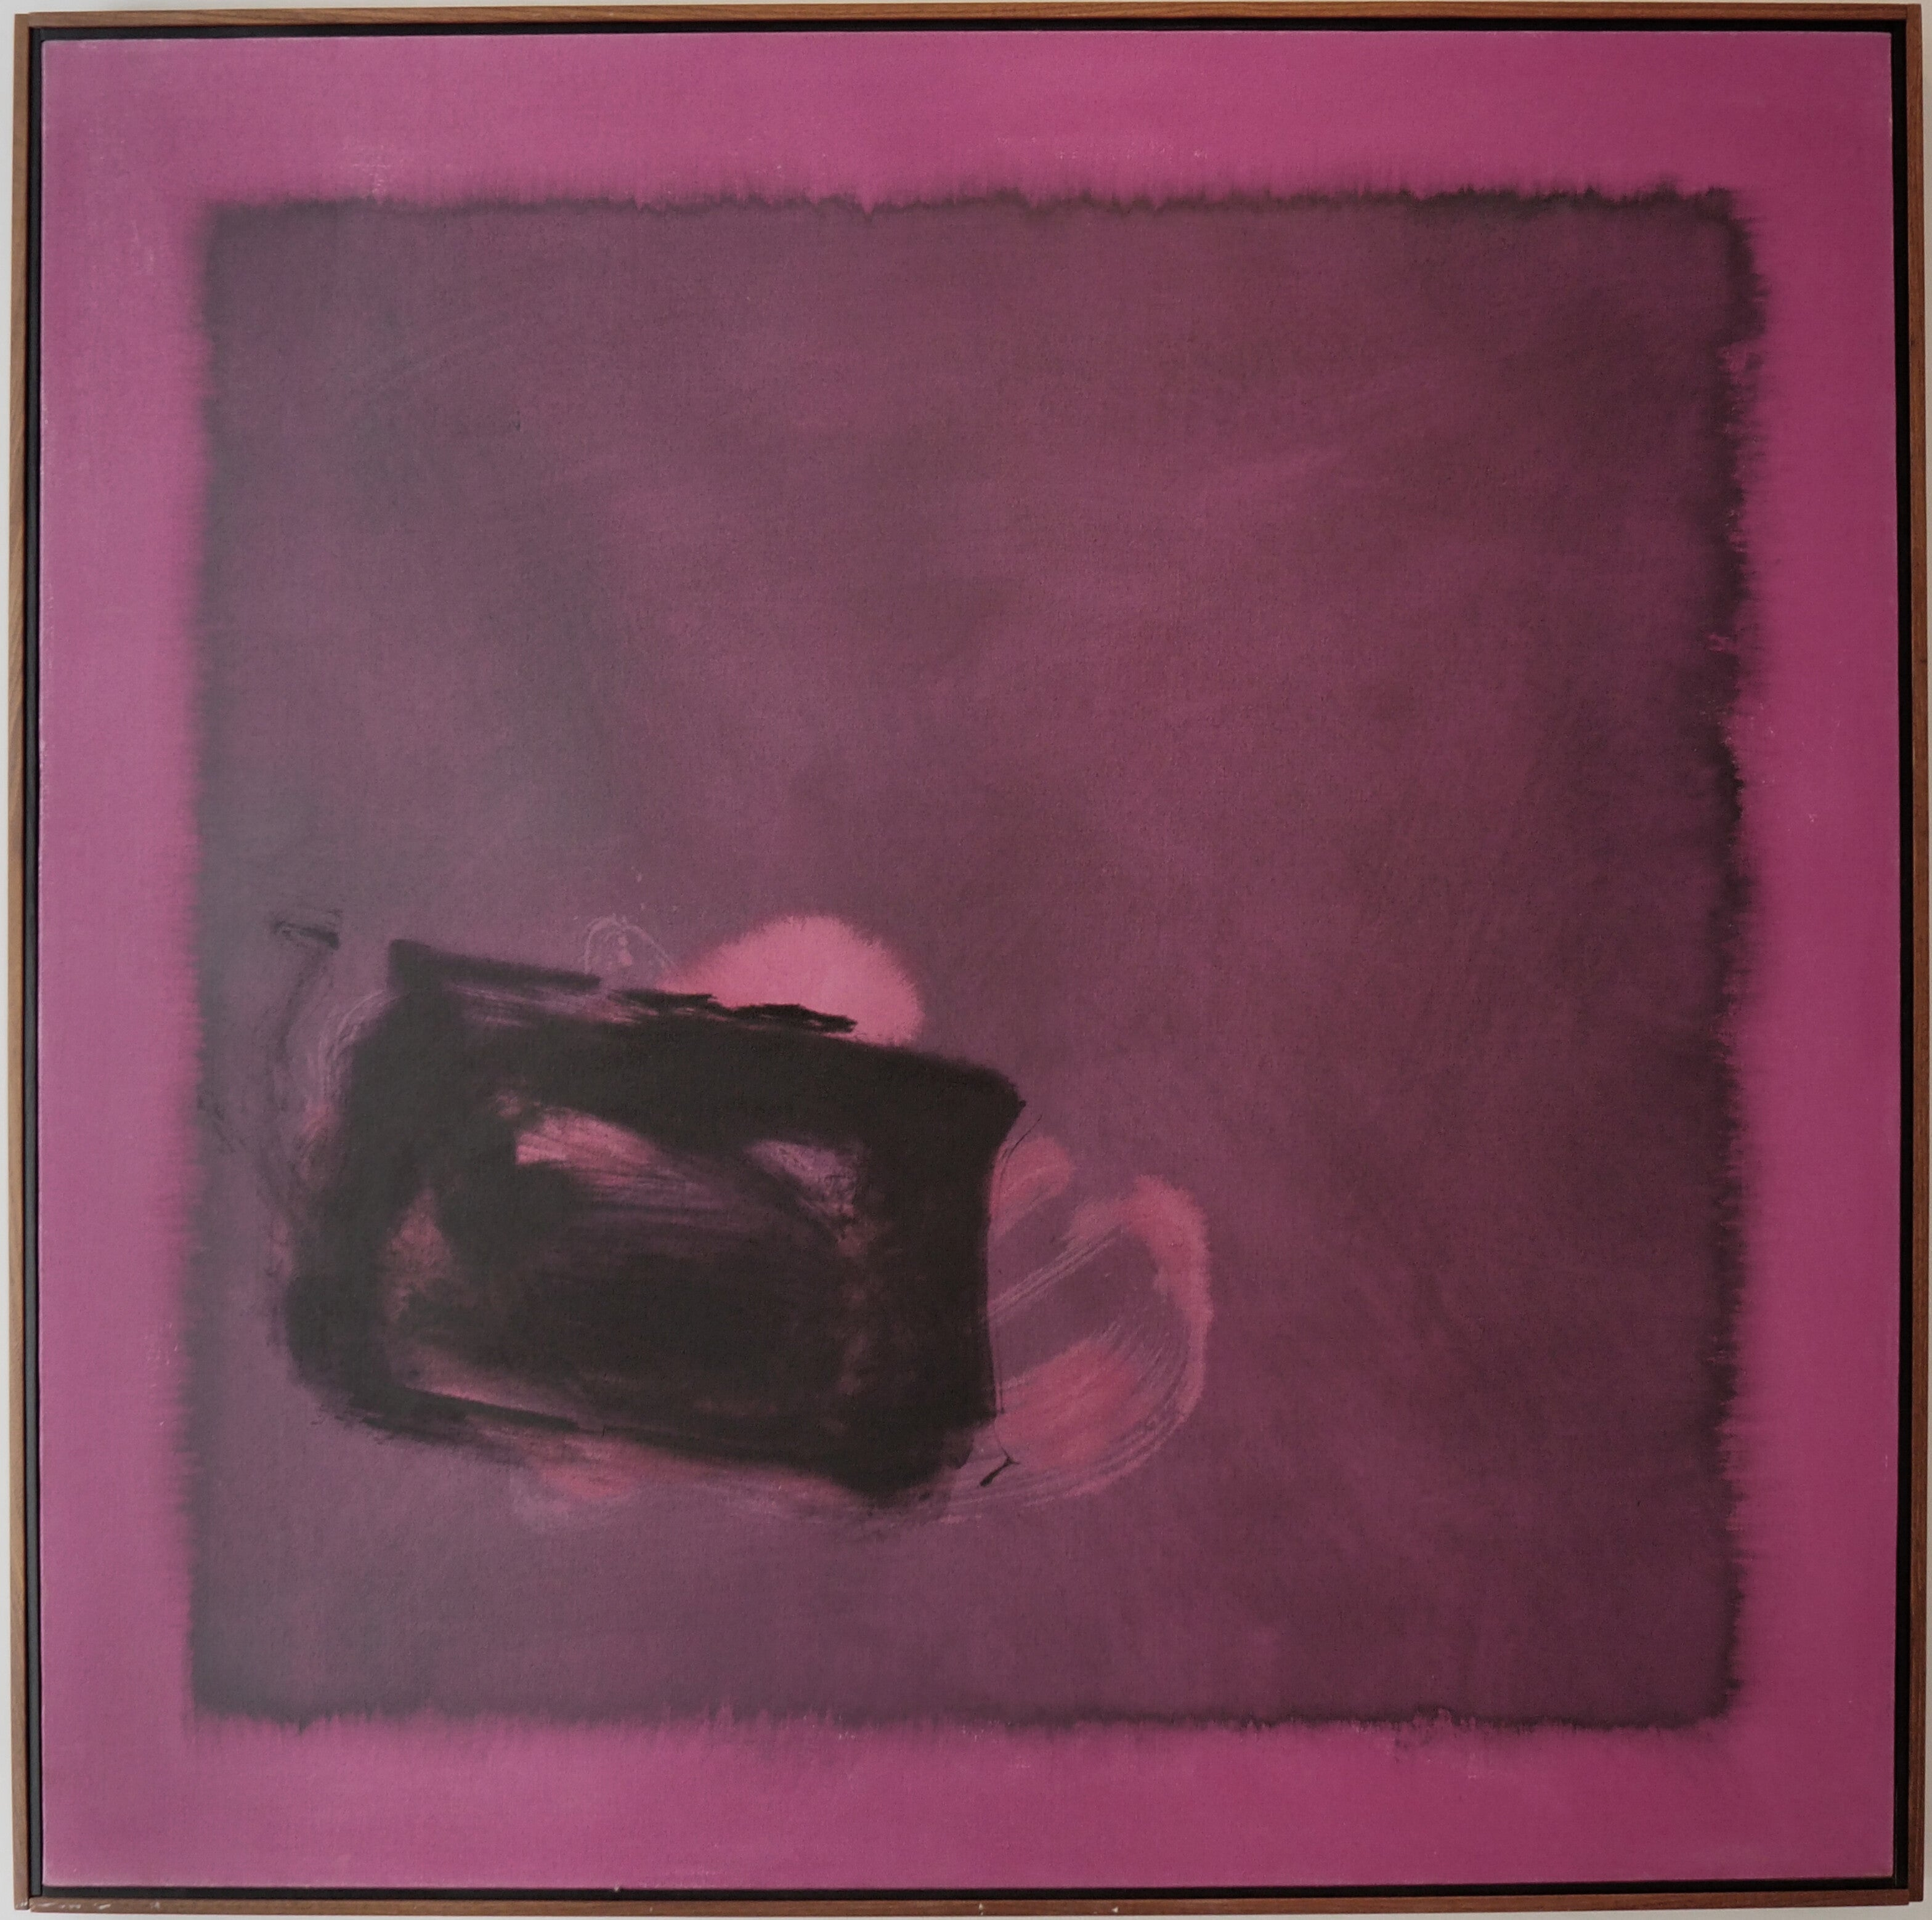 Cleve Gray, Conjunction #199, Acrylic on Canvas, 1976